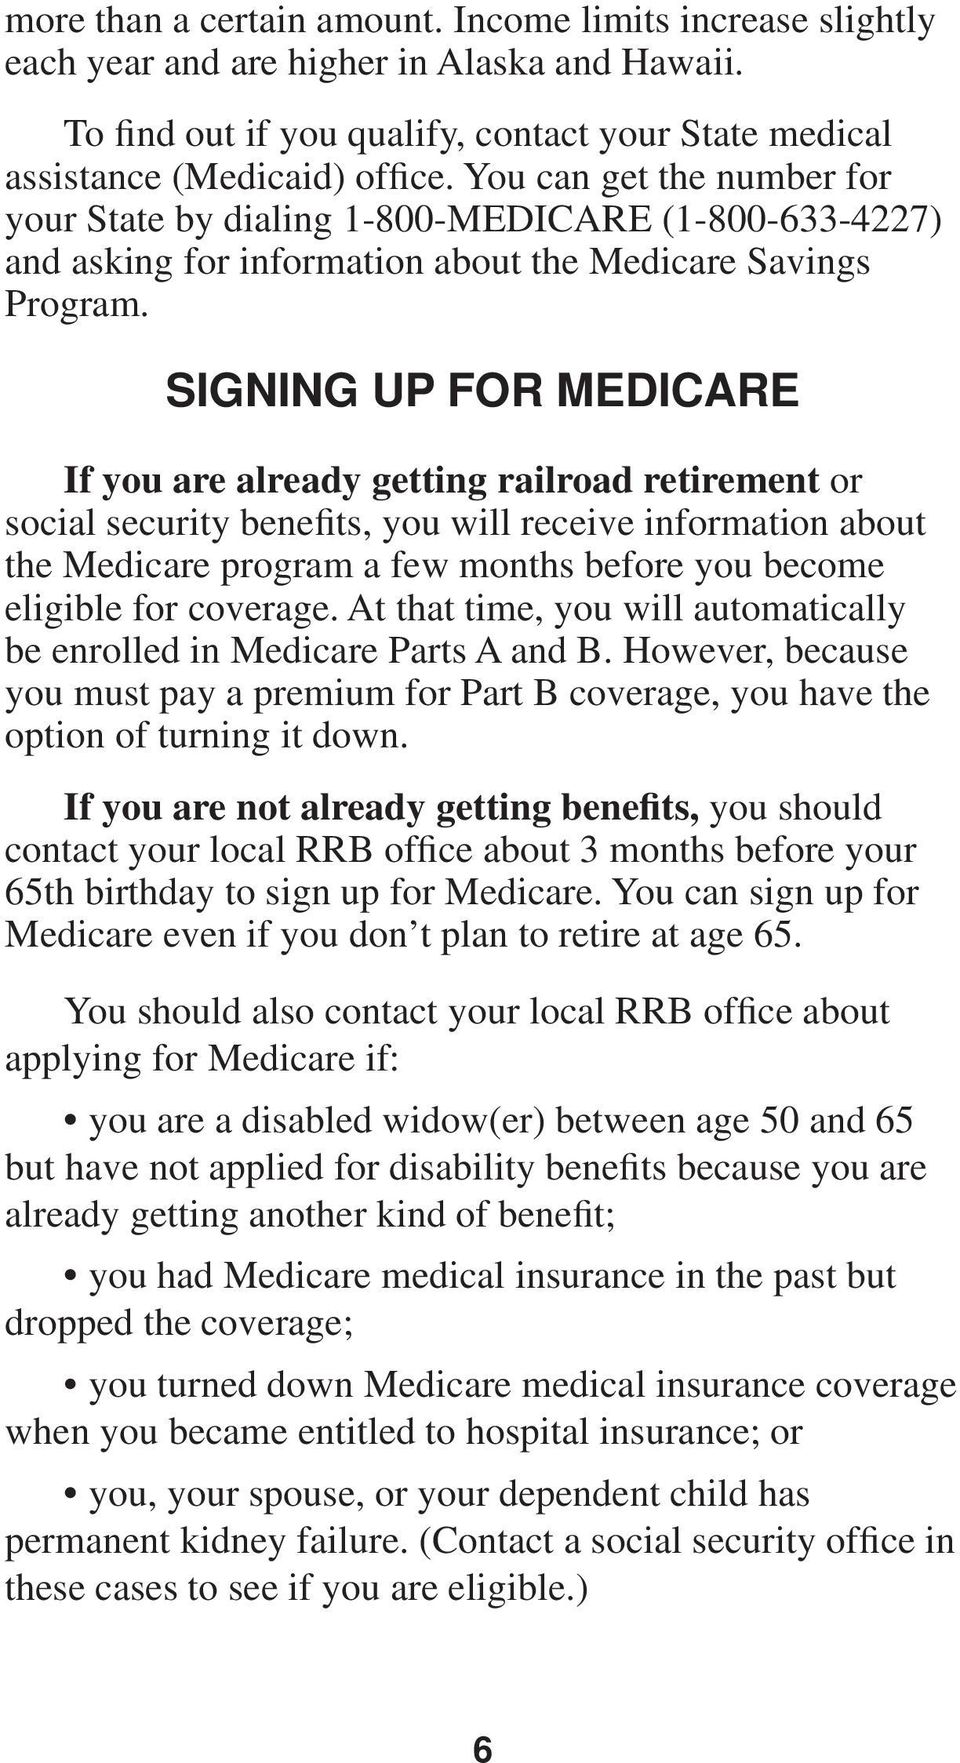 SIGNING UP FOR MEDICARE If you are already getting railroad retirement or social security benefits, you will receive information about the Medicare program a few months before you become eligible for